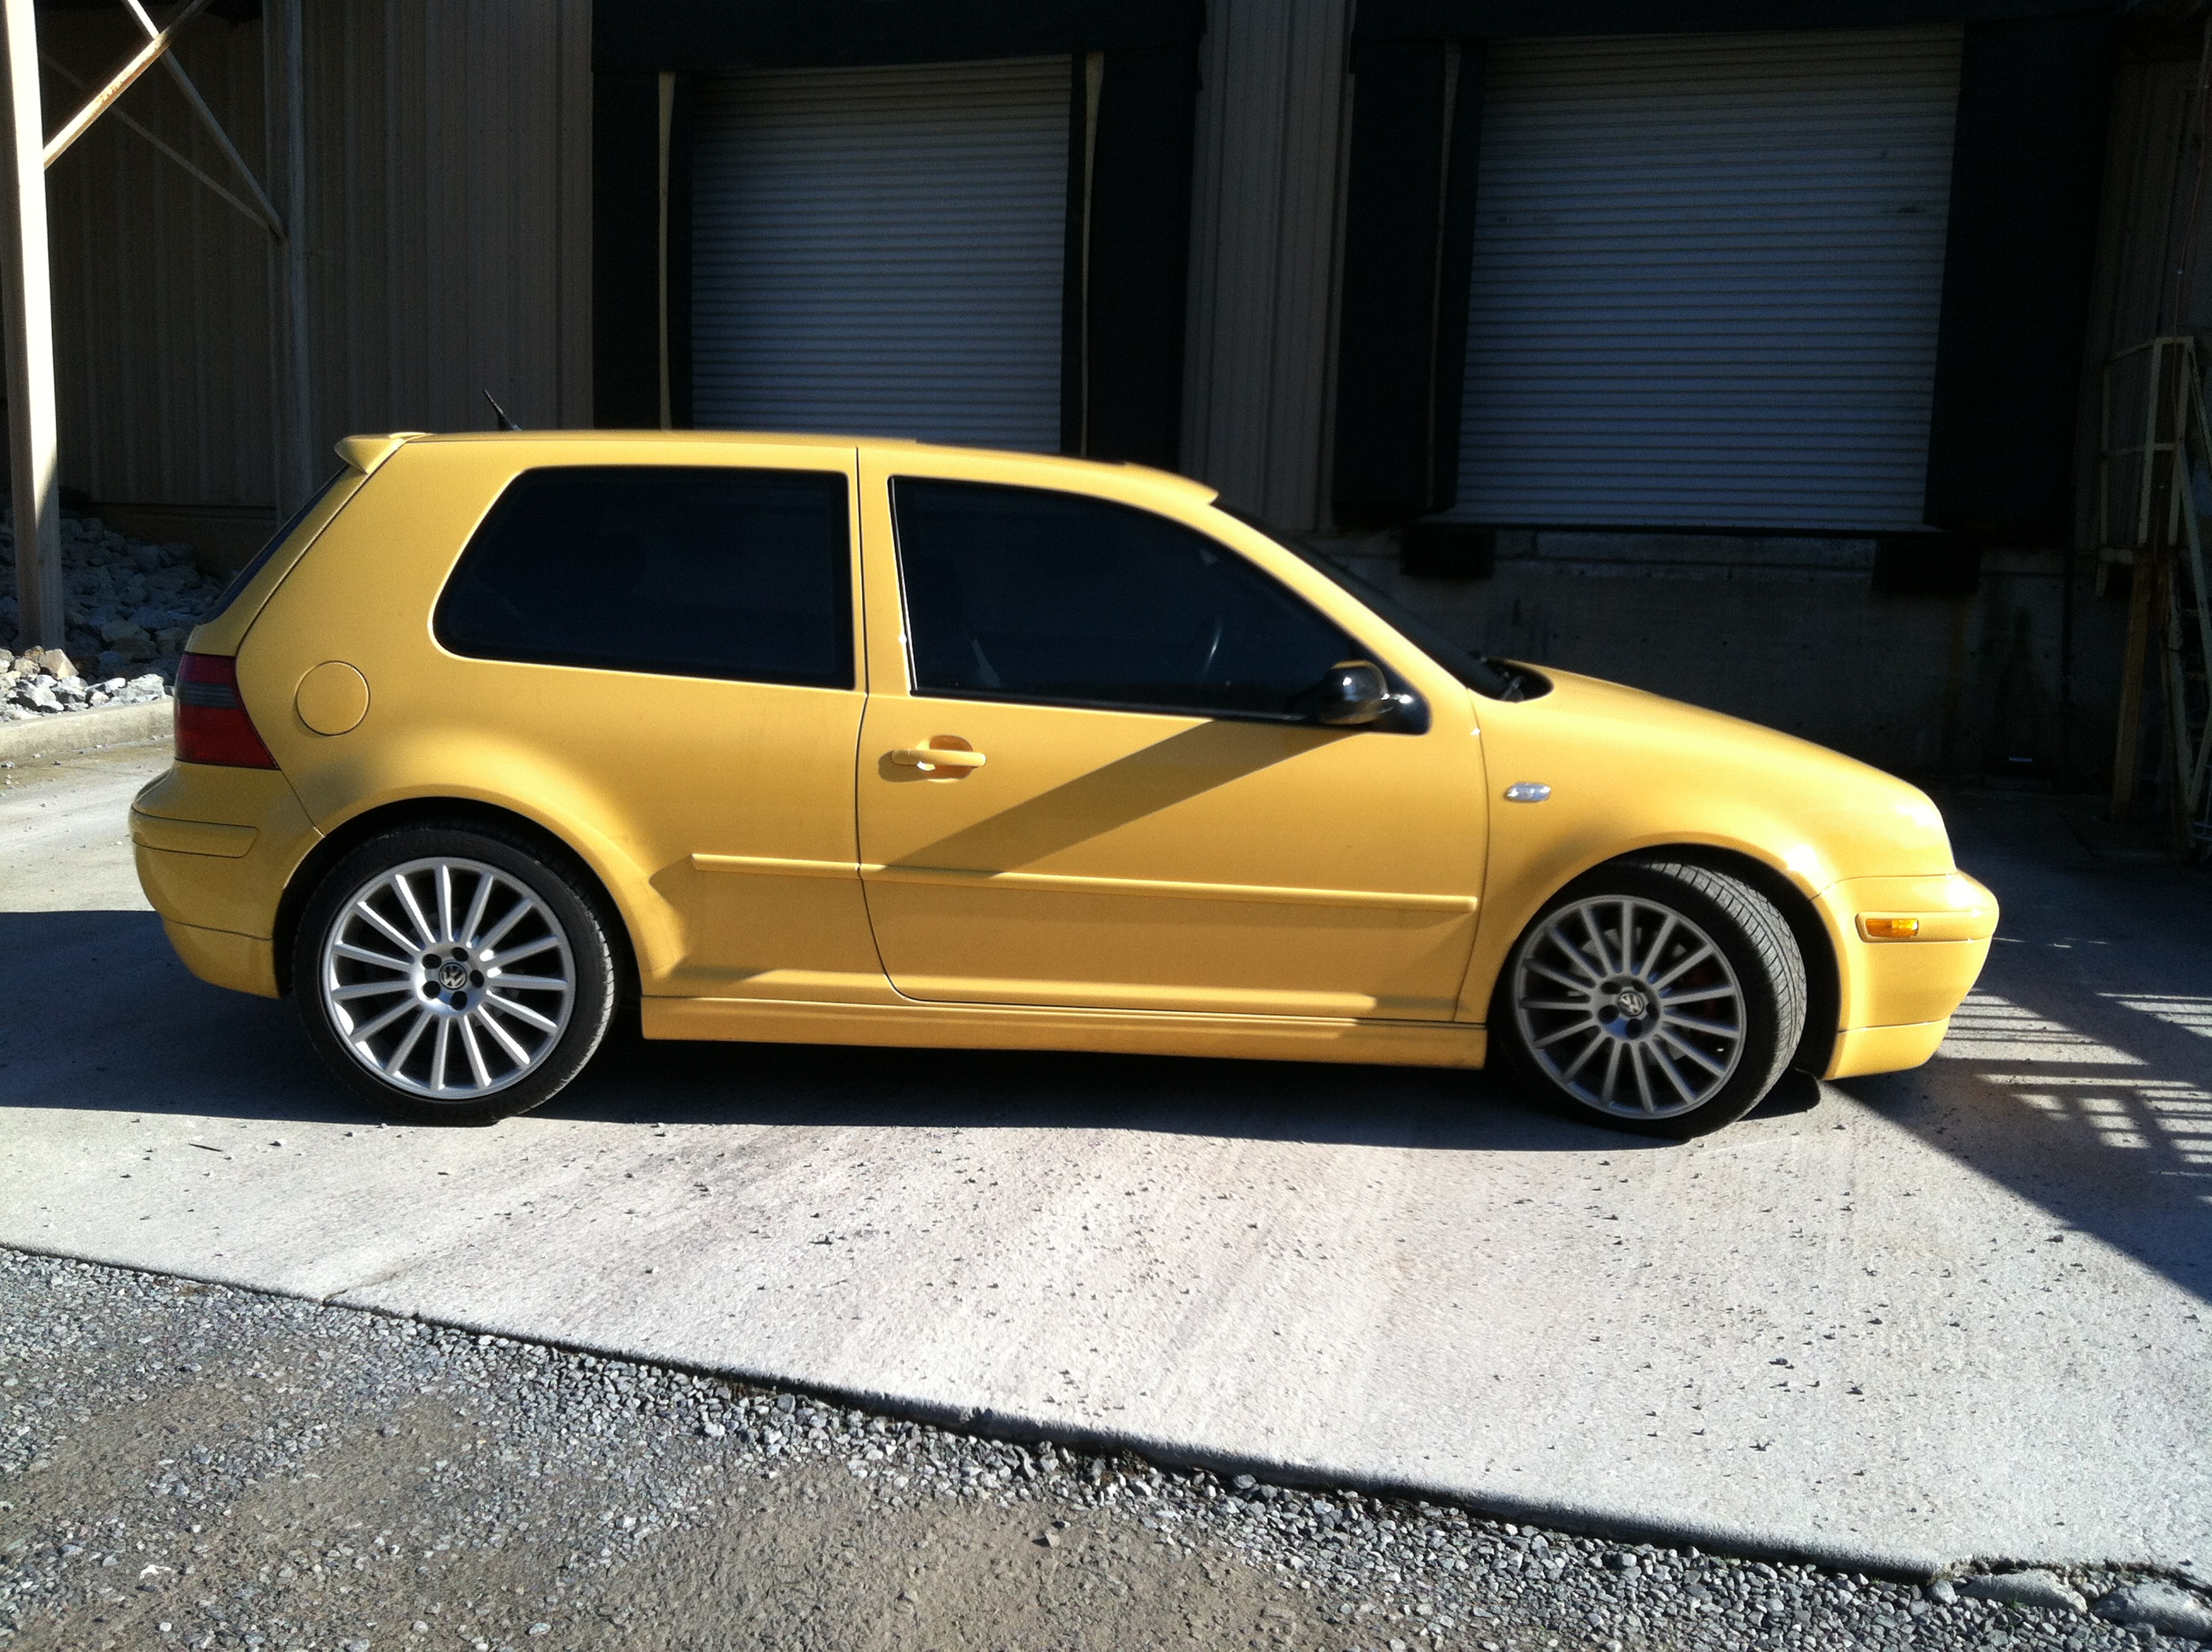 My super awesome 2003 VW GTI 20th anniversary edition.